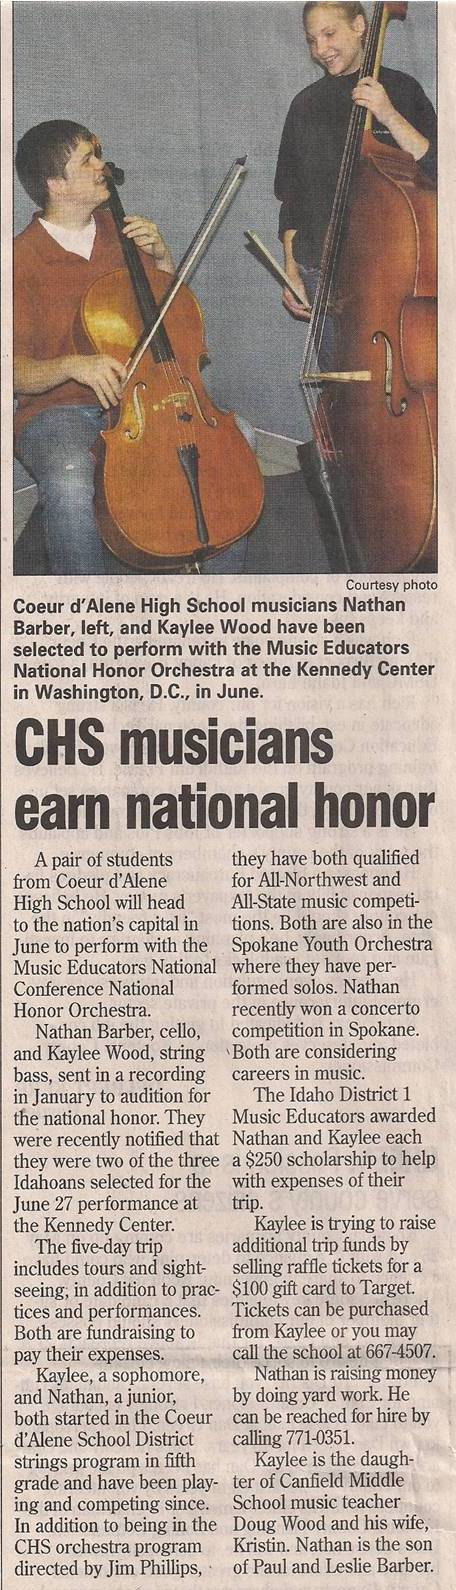 Nathan honor orchestra